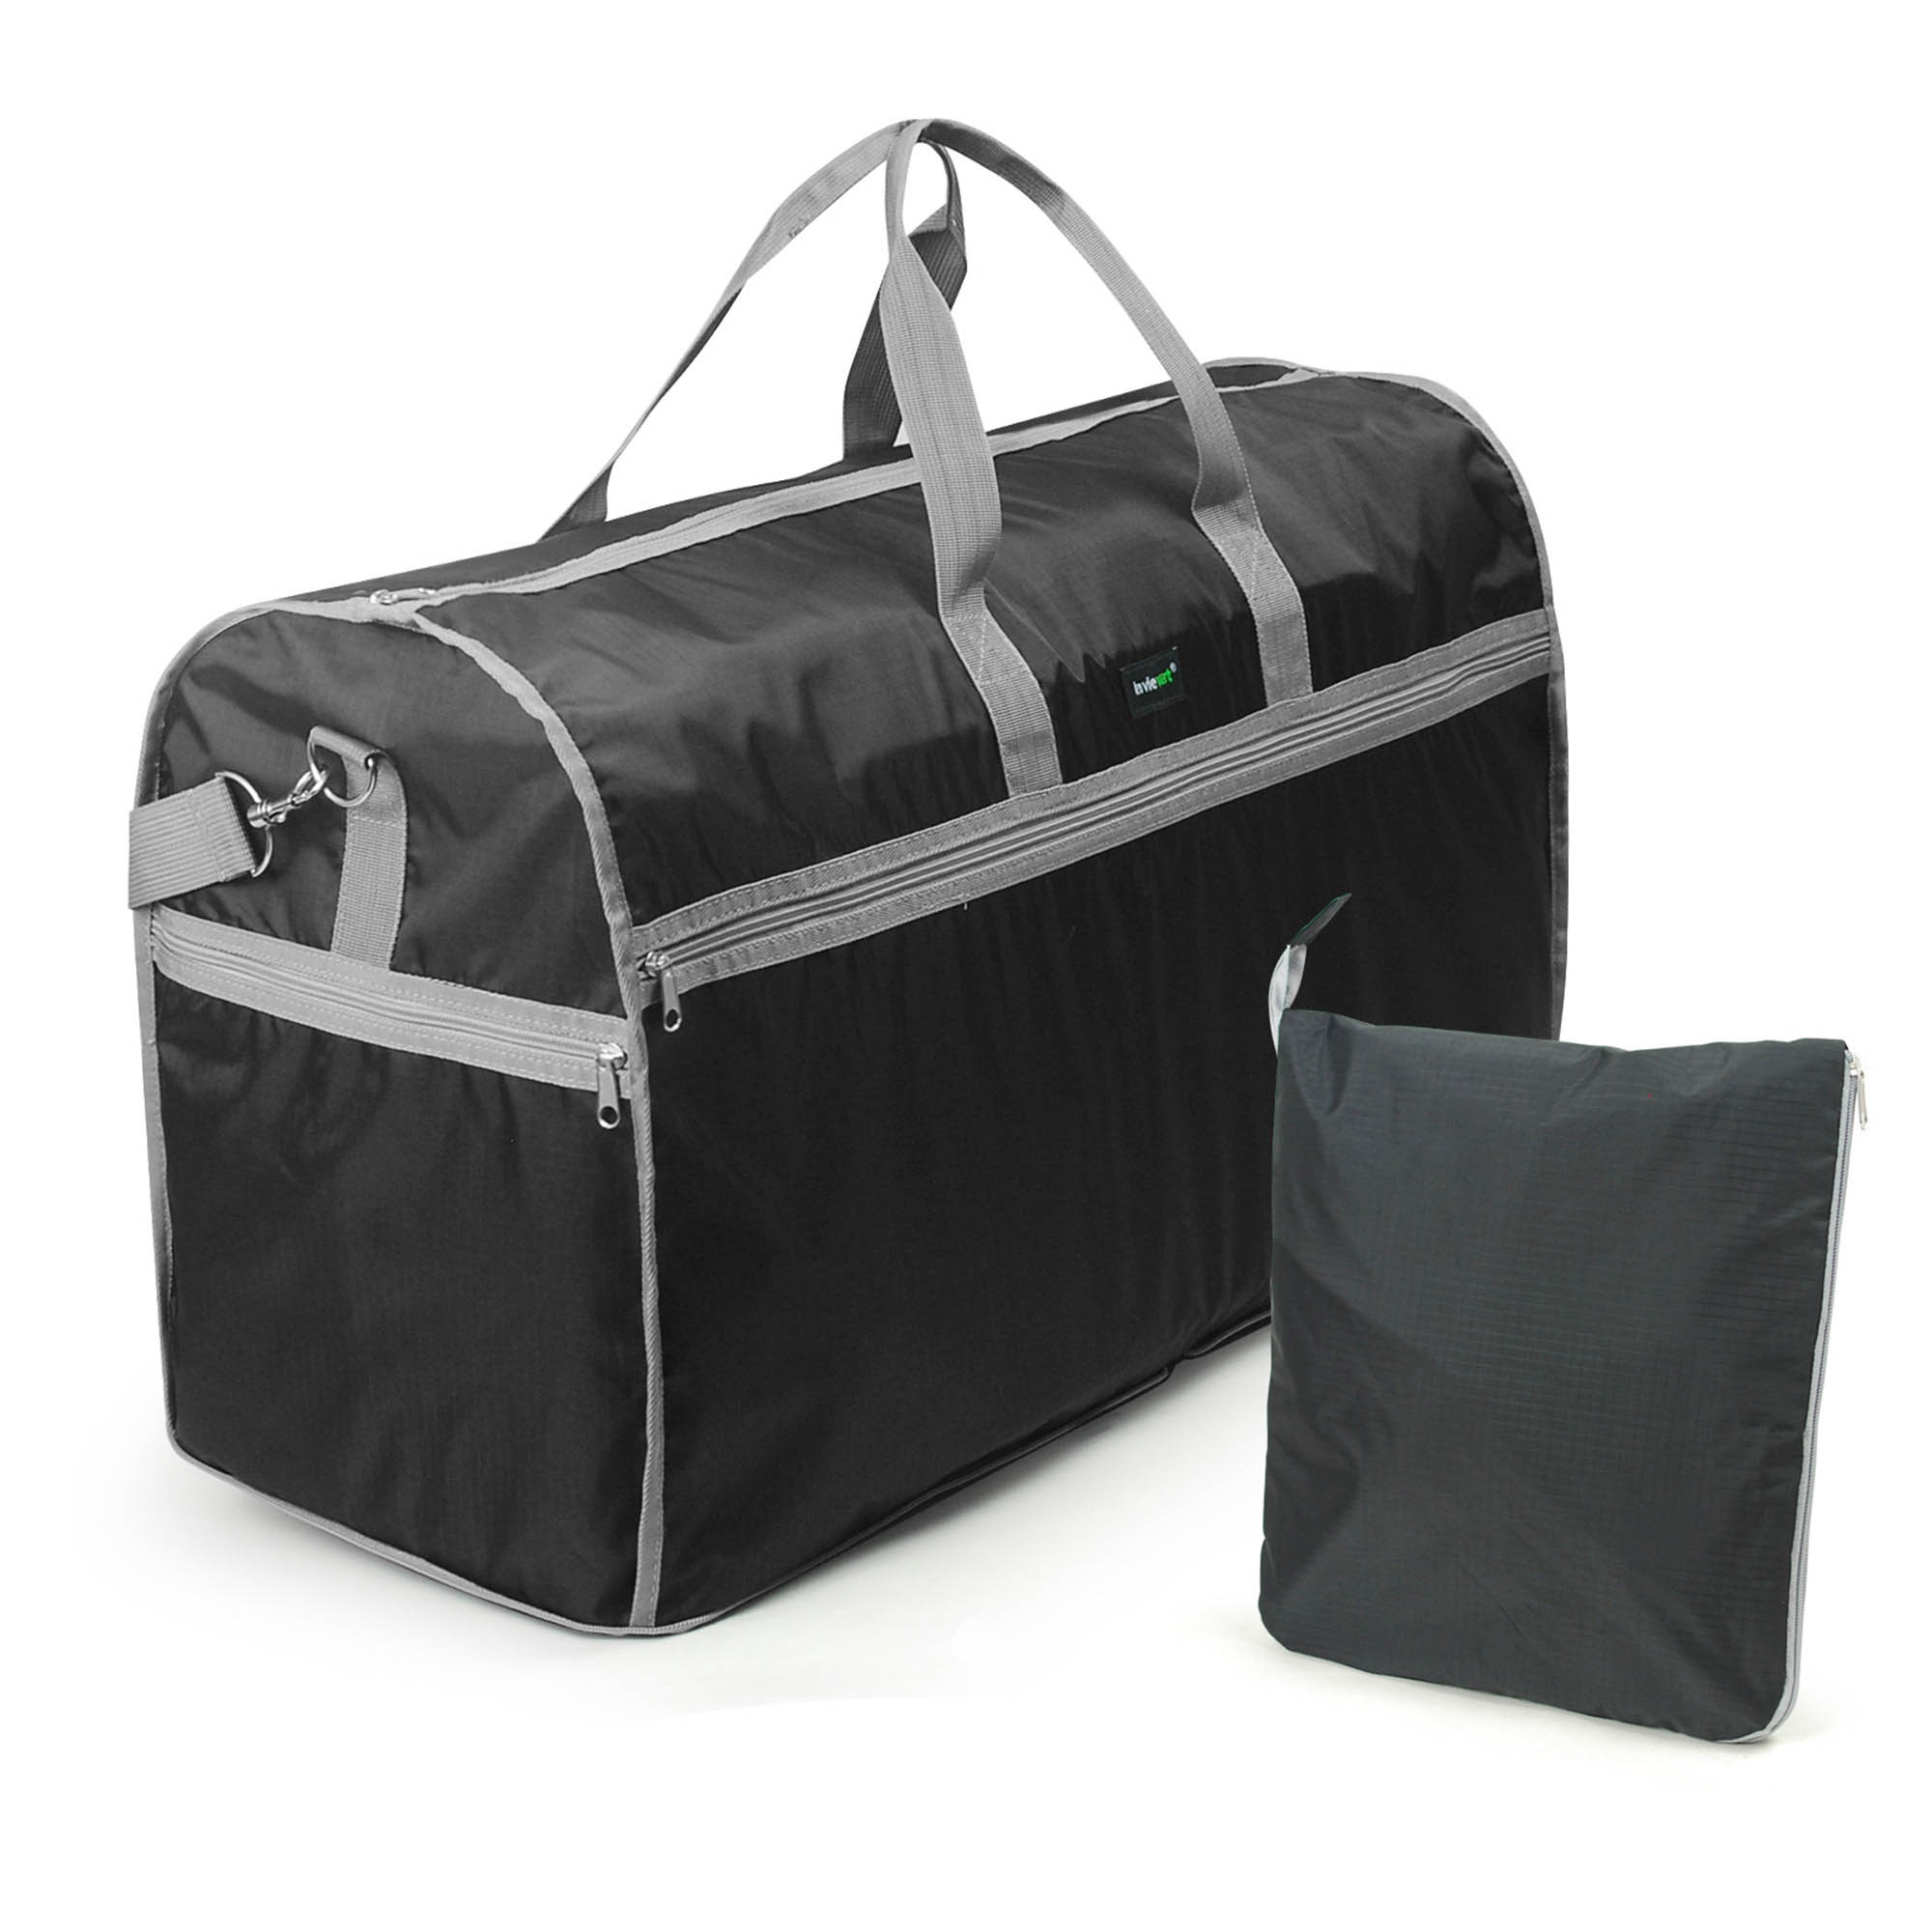 Lavievert Foldable Travel Duffle Bag Attached to Luggage